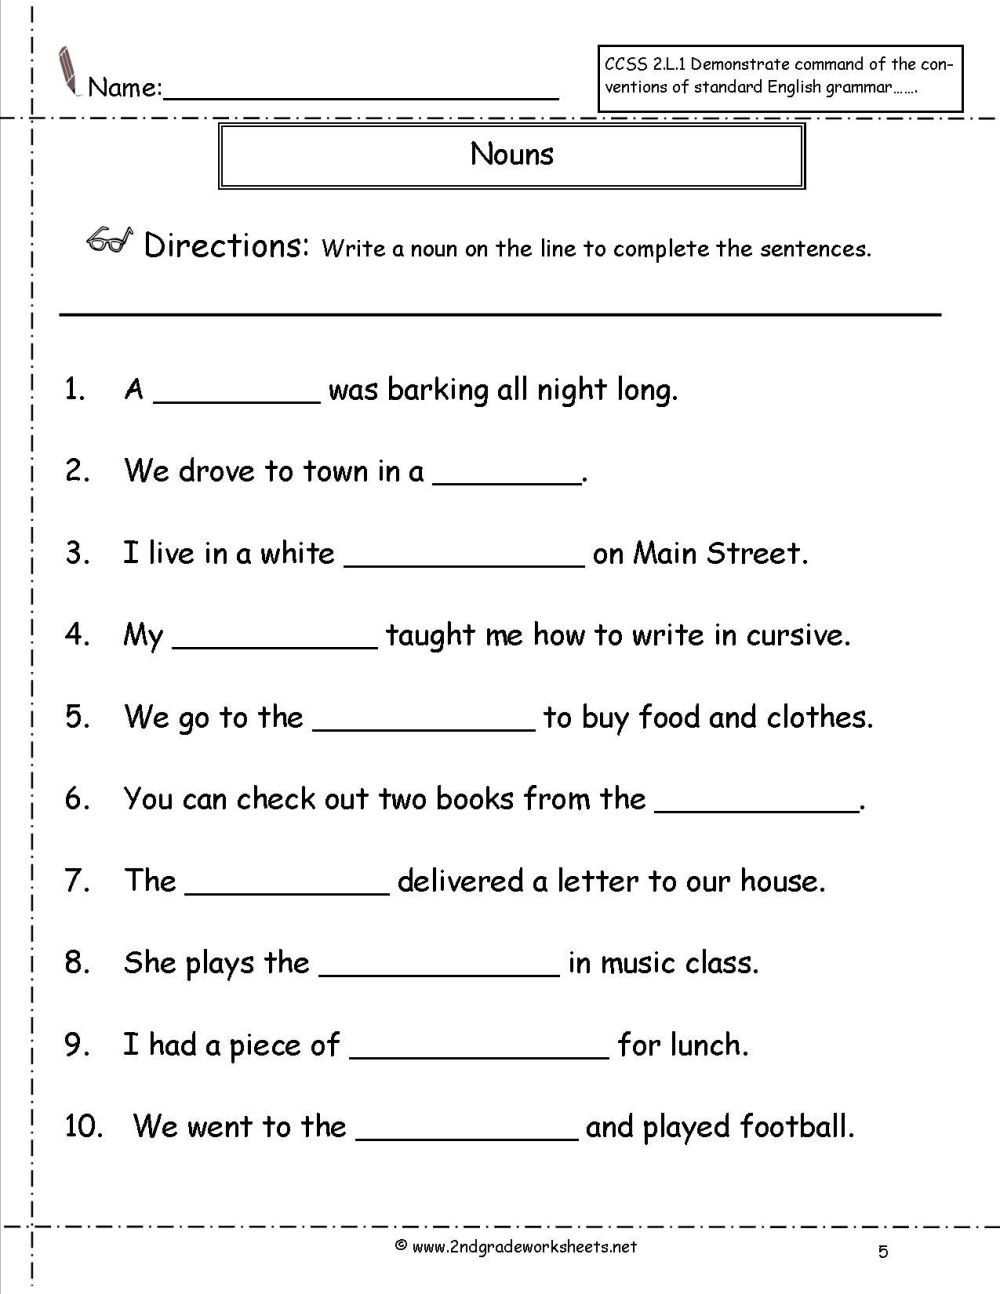 medium resolution of Concrete And Abstract Nouns Worksheets And Task Cards: St Patrick's on Best  Worksheets Collection 3348